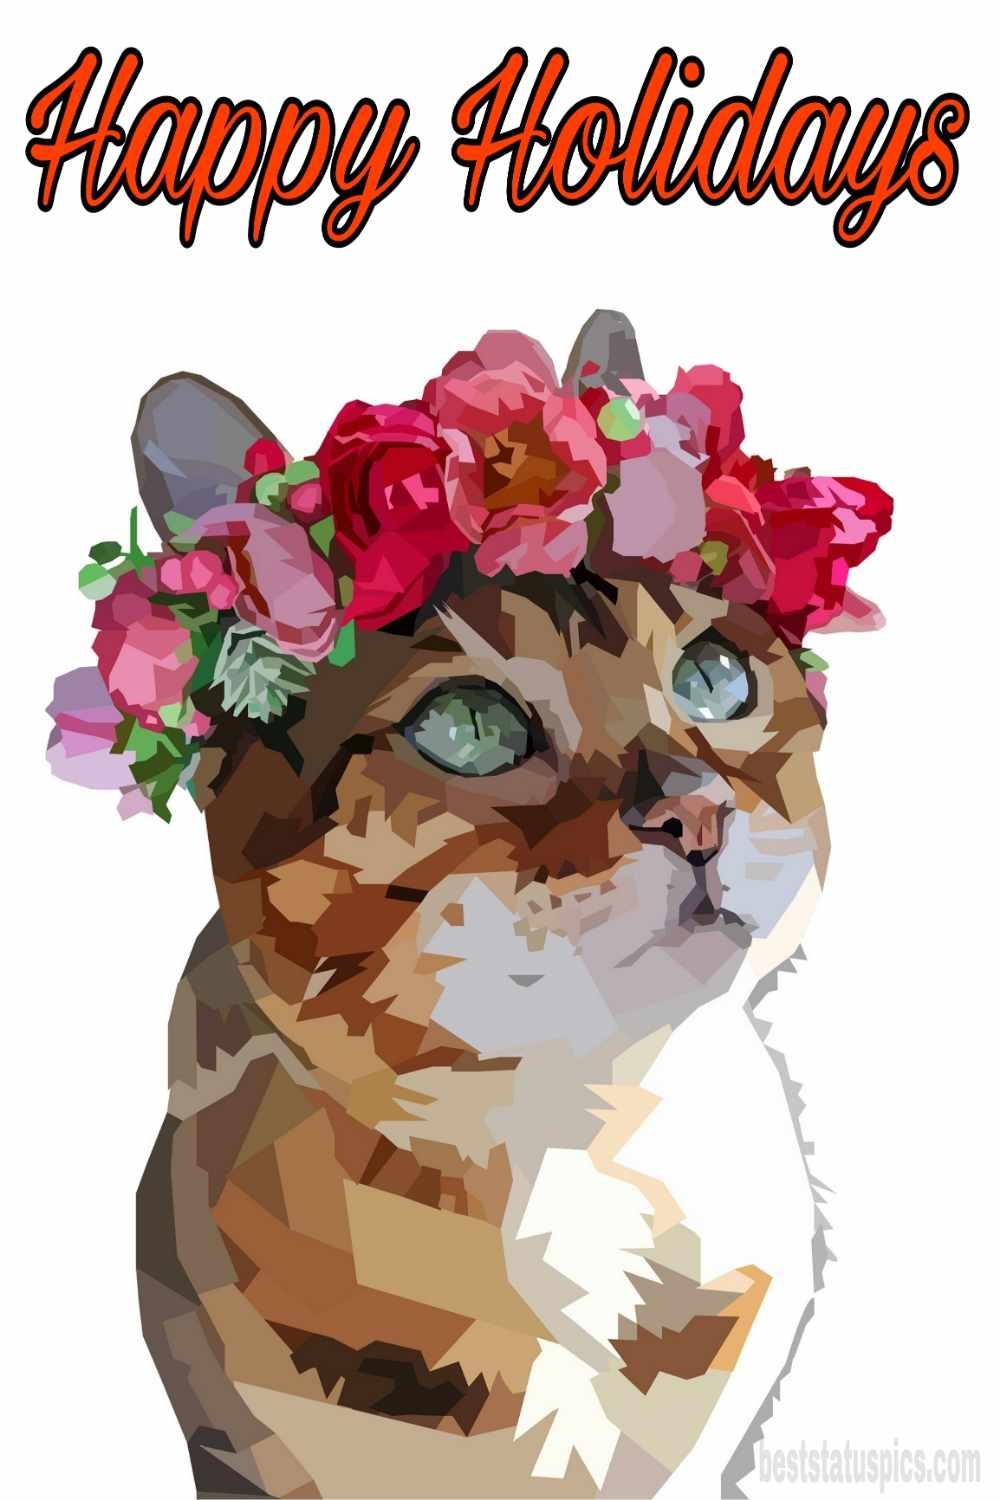 Happy holidays 2022 wishes images with cat for friends and pinterest